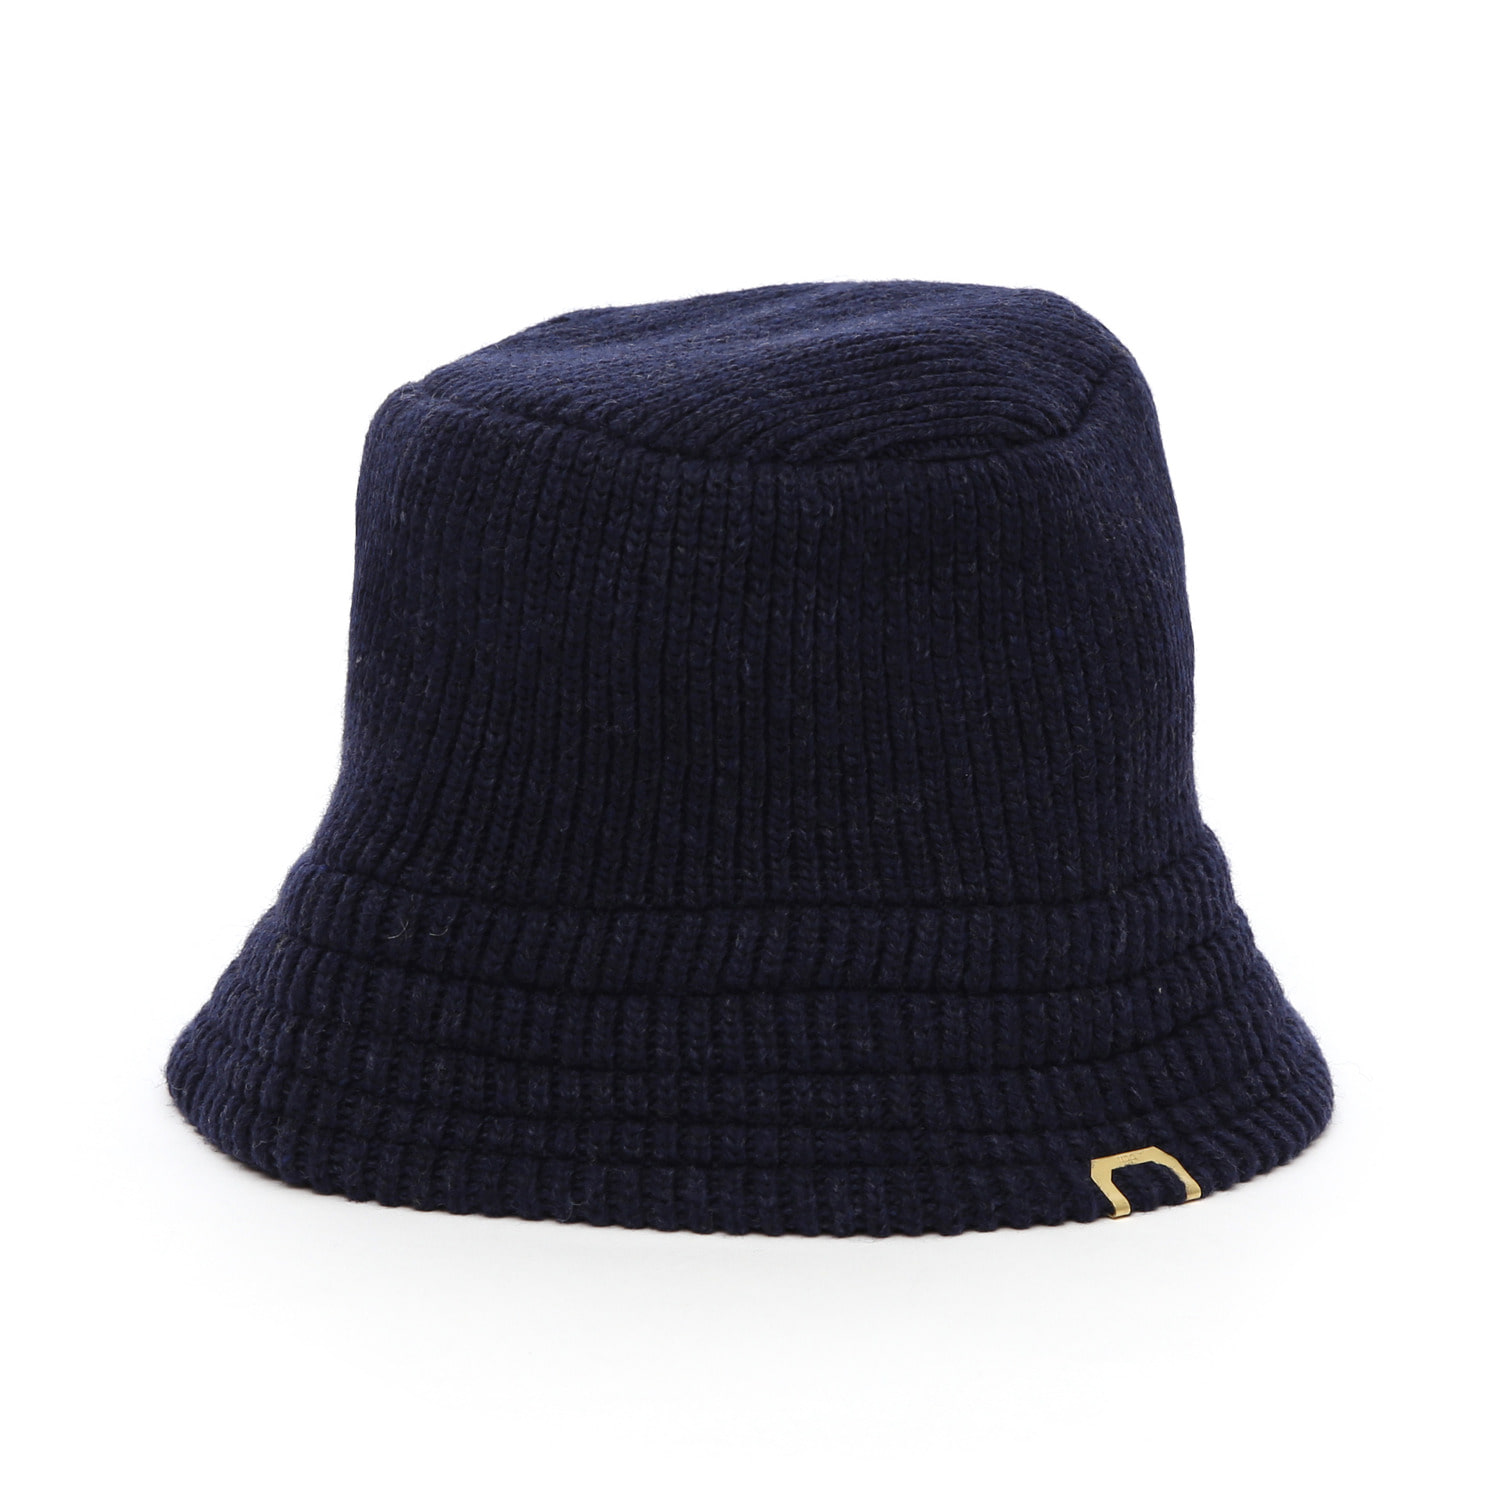 KNIT BUCKET / LAMBS WOOL / HTR NAVY